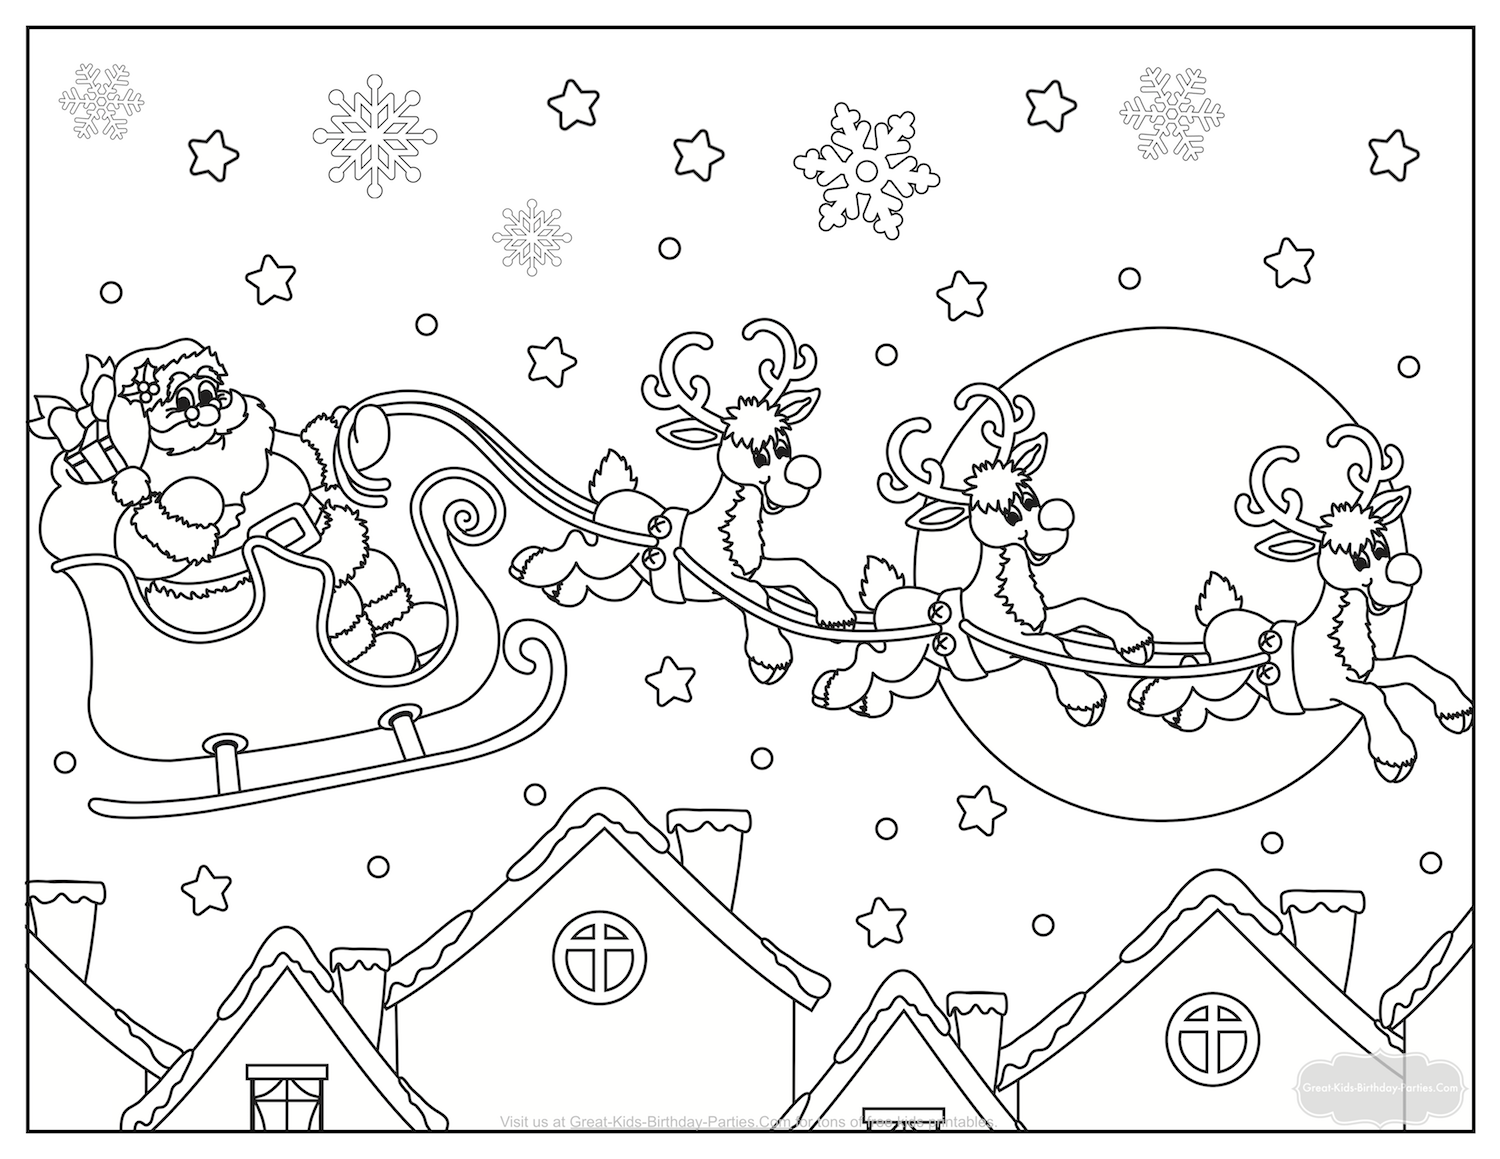 Coloring Pages : Free Santa Sleigh Pattern Printable Sled Coloring Page  Reindeer Wood Wooden One Outstanding Santa Sleigh Coloring Page ~ Ny19 Votes